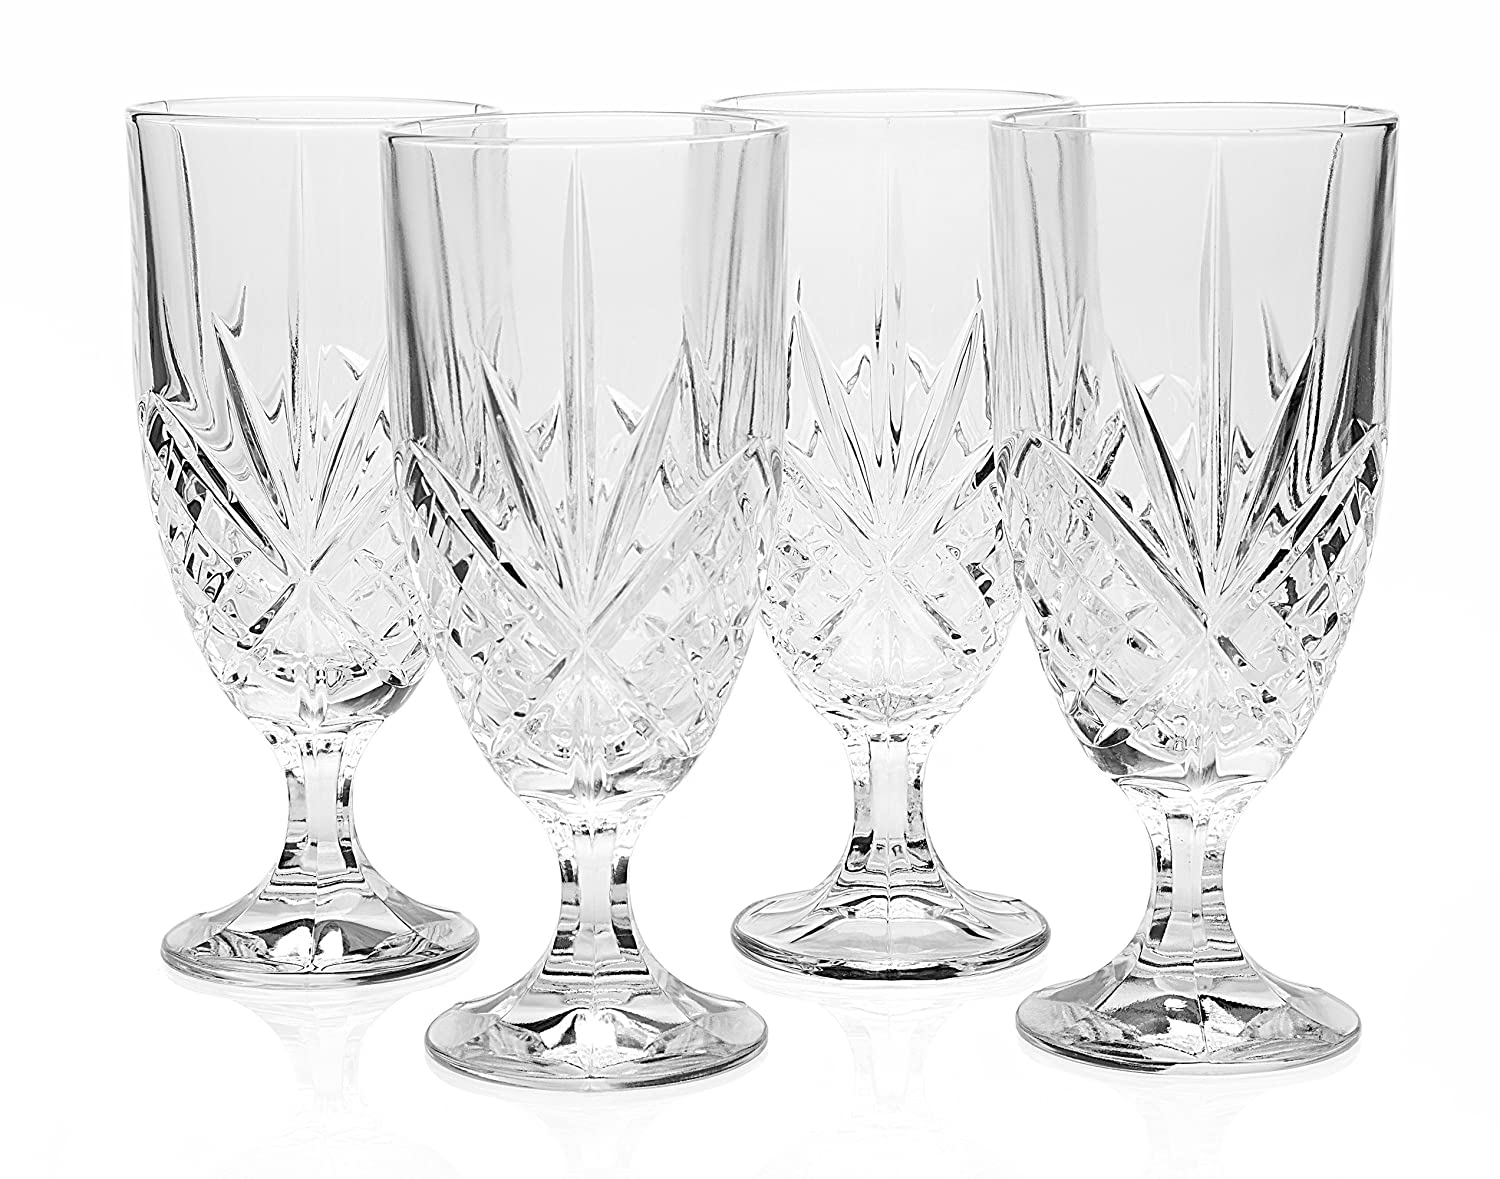 Godinger Dublin Crystal Set of 12 Iced Beverage Glasses 25732